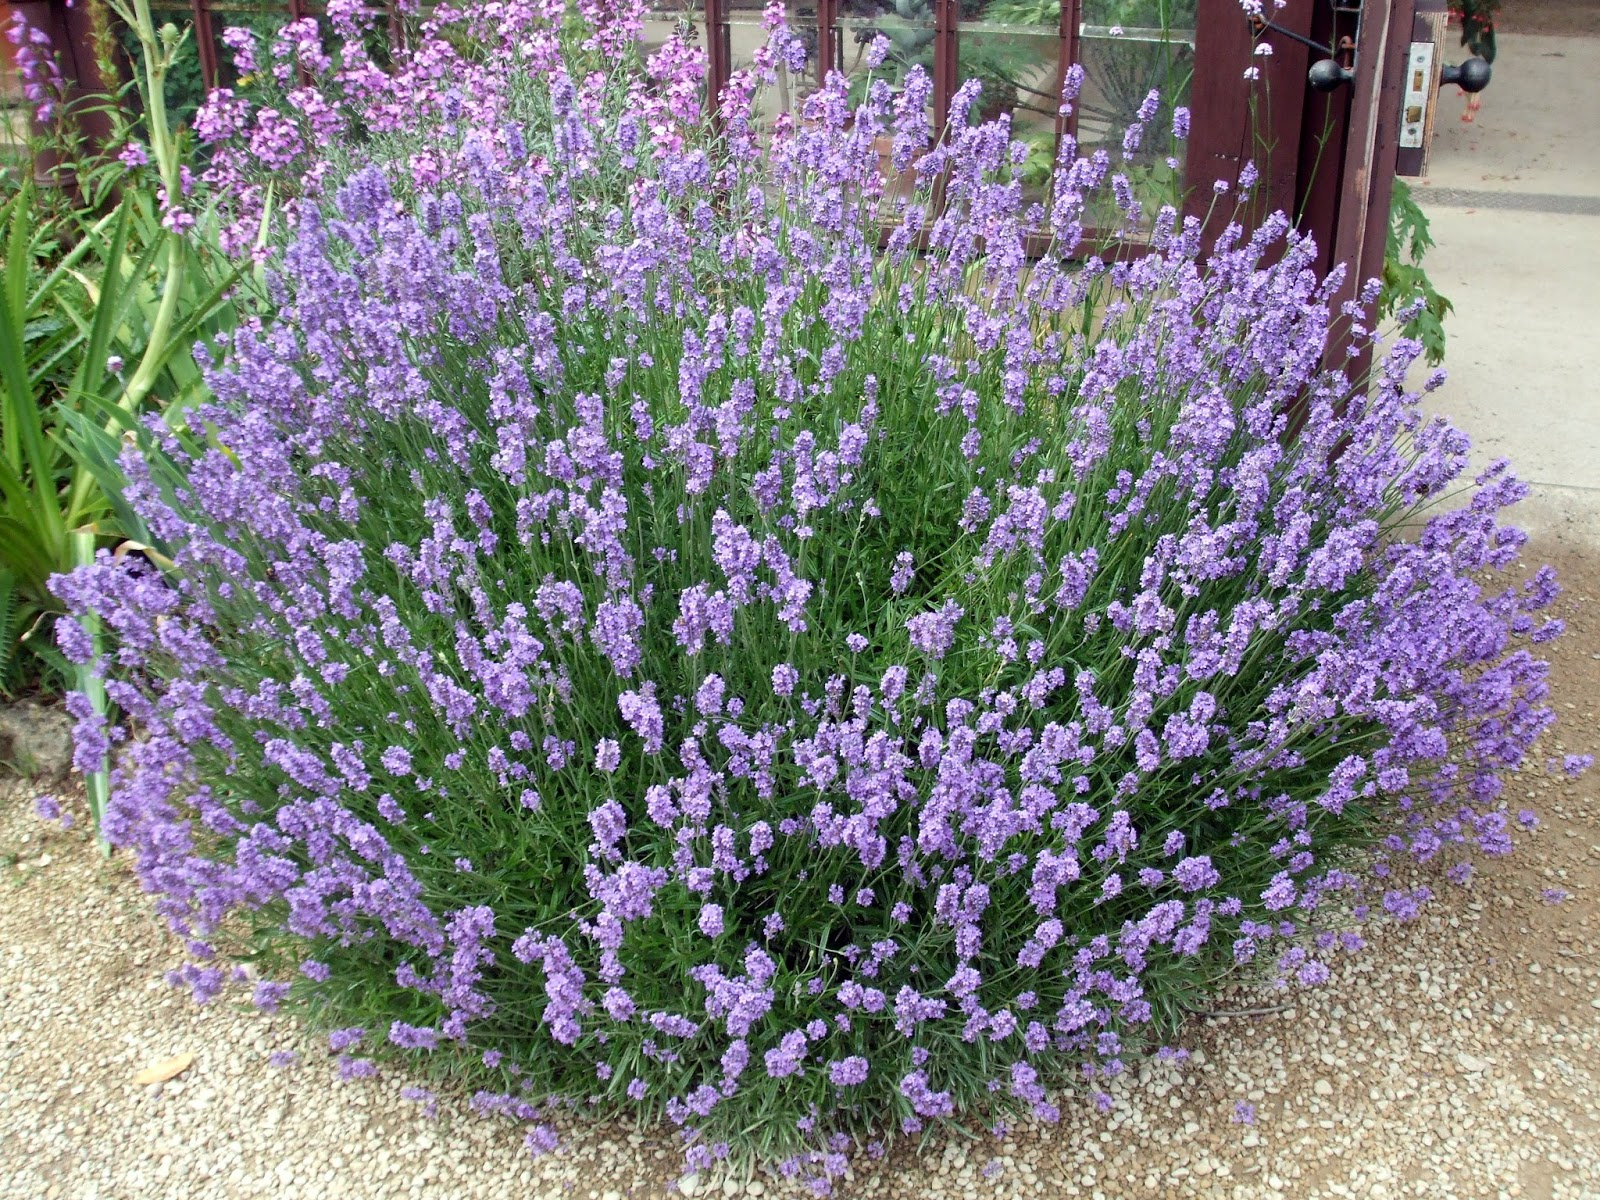 ... sea level, one finds the best growing conditions for English Lavender